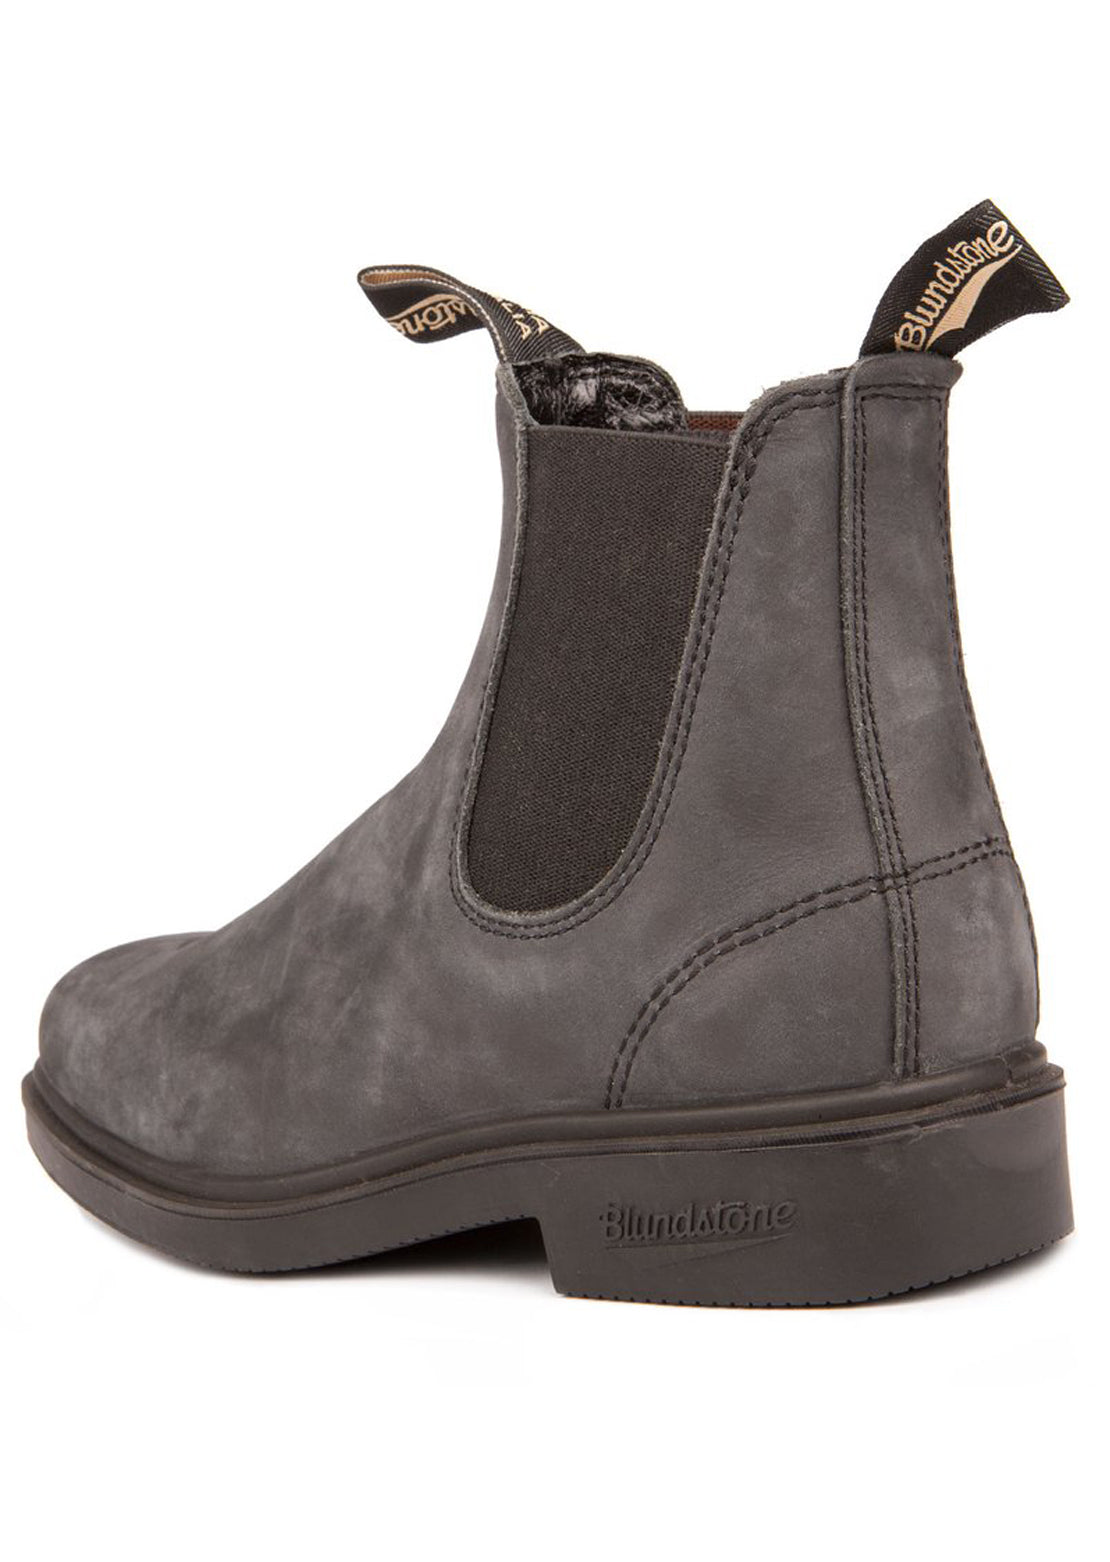 Blundstone 1308 Chisel Toe Boots (1308) Rustic Black